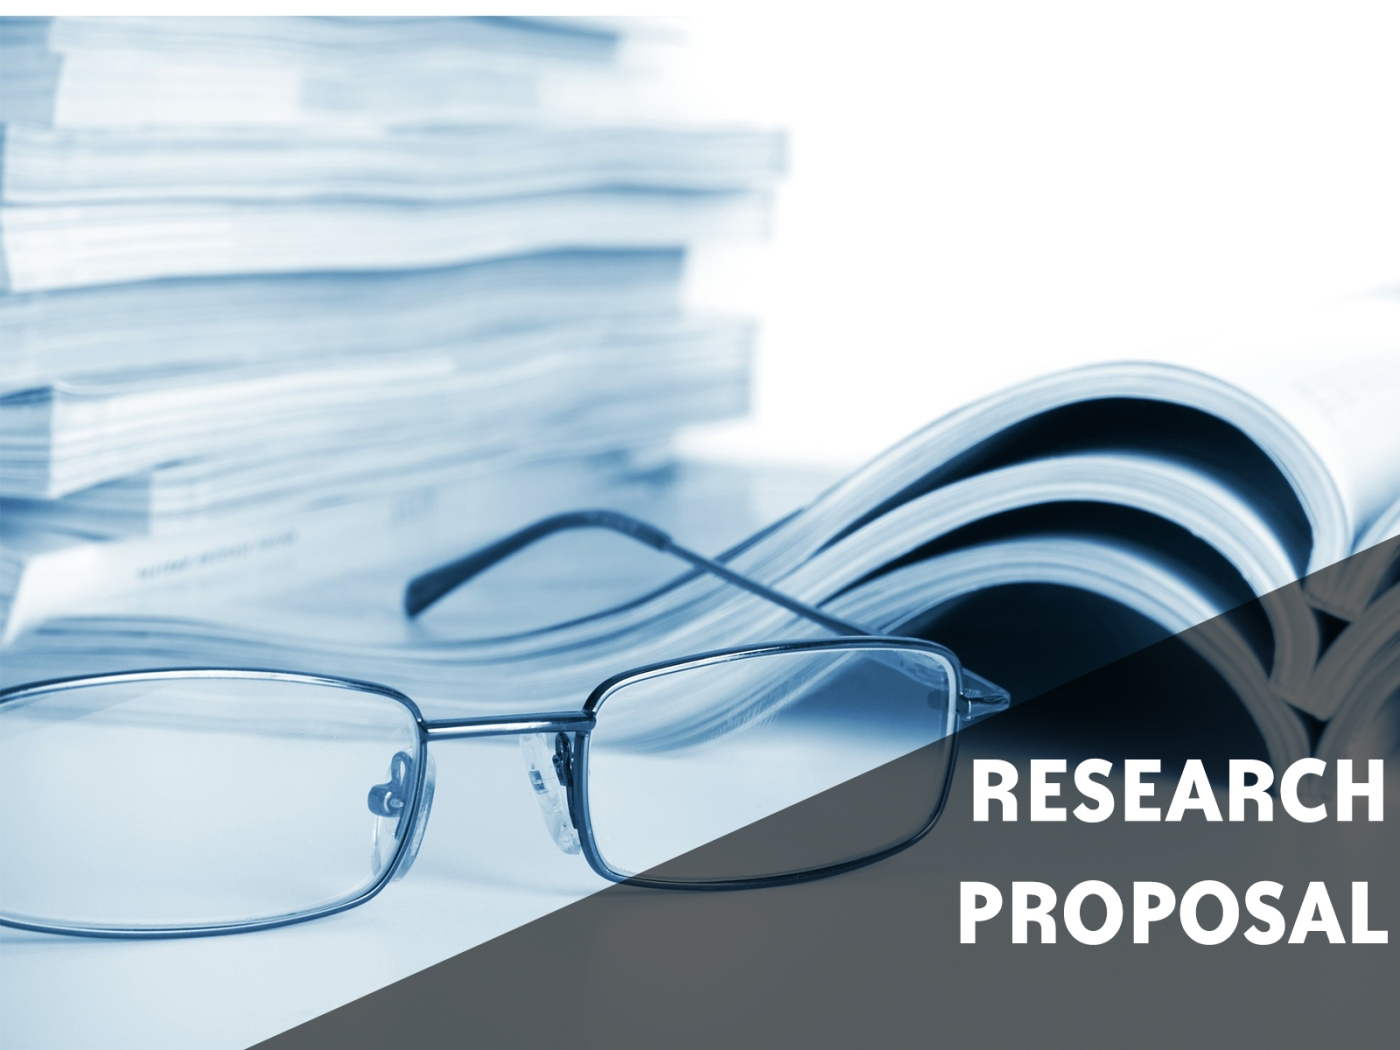 PhD writing guidelines for research scholars in India